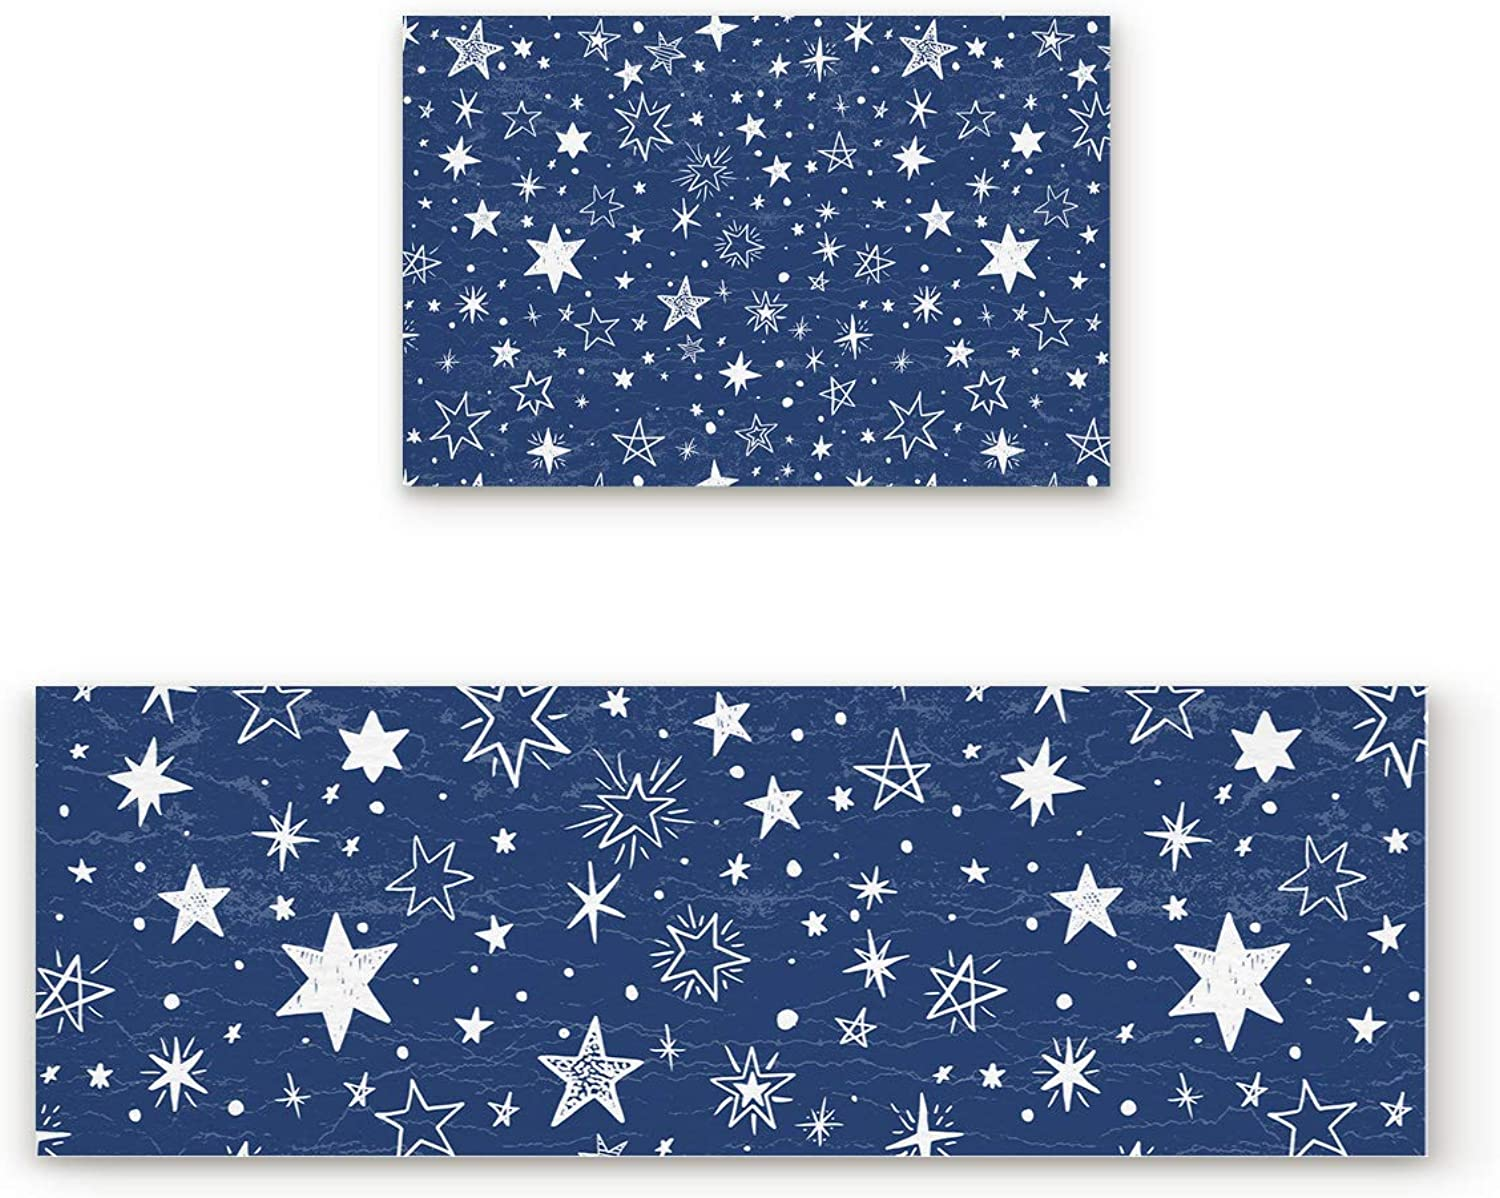 Aomike 2 Piece Non-Slip Kitchen Mat Rubber Backing Doormat bluee and White Stars Runner Rug Set, Hallway Living Room Balcony Bathroom Carpet Sets (19.7  x 31.5 +19.7  x 47.2 )